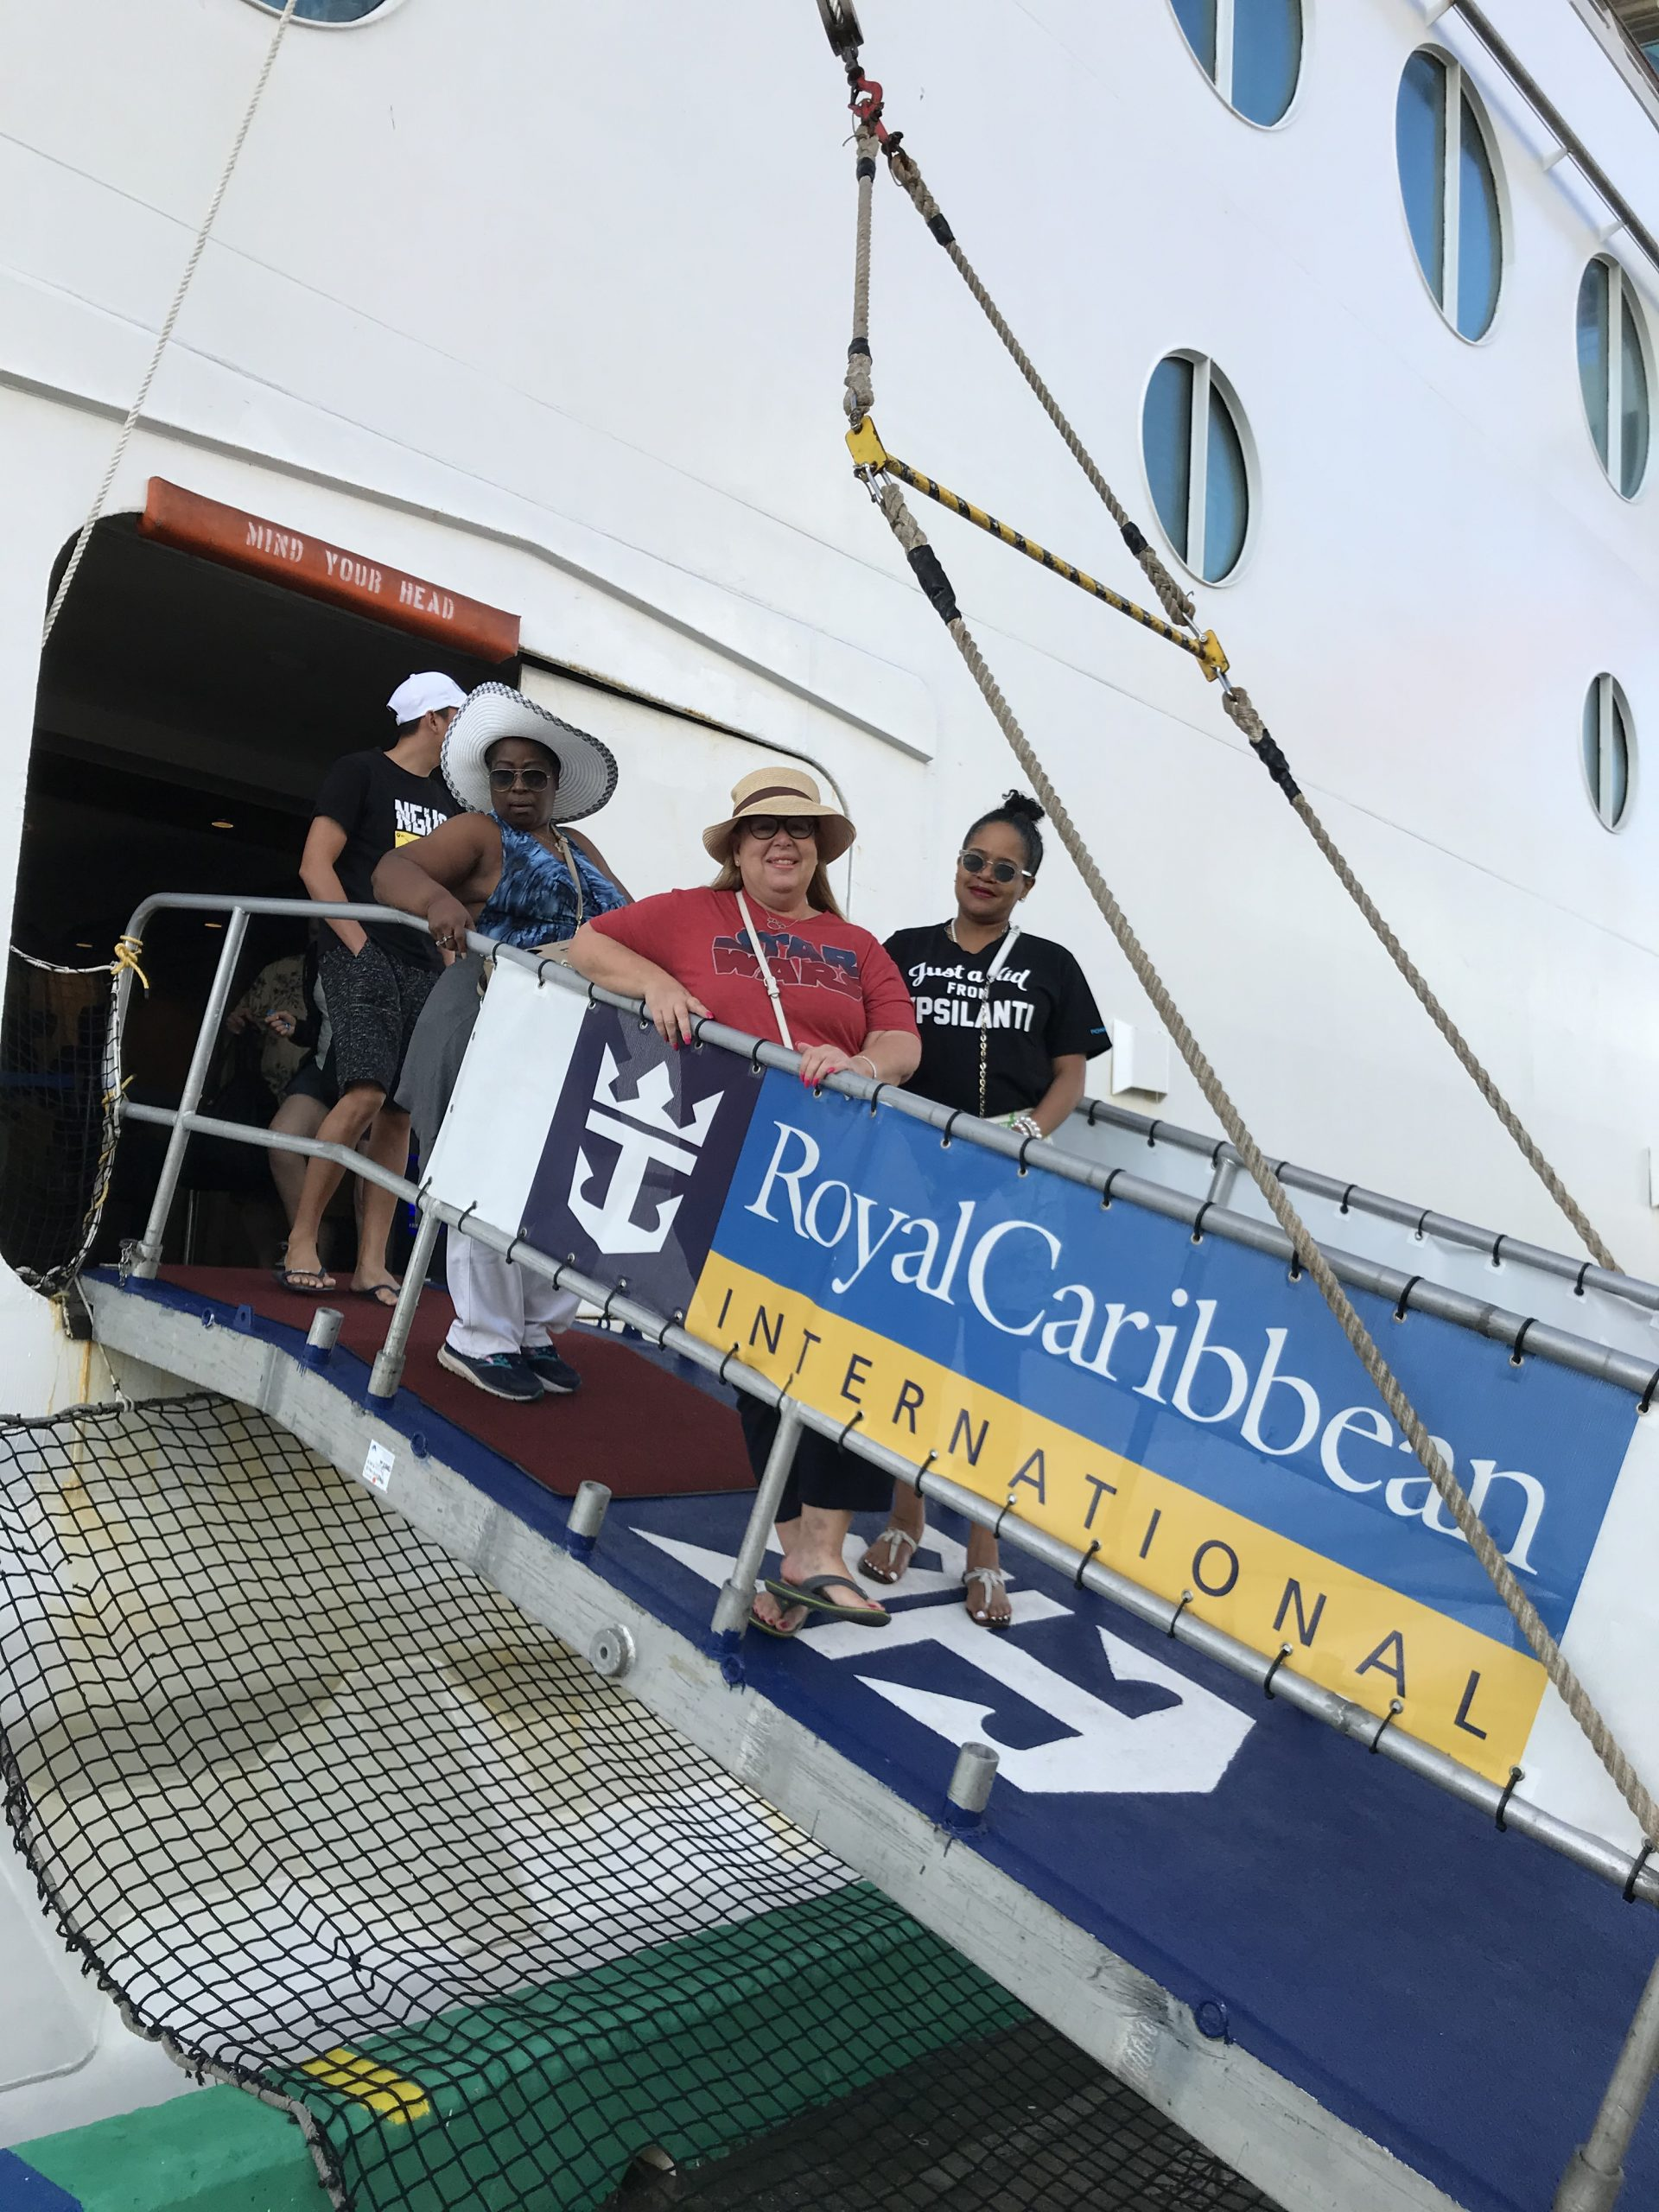 CruiseRoyalCaribbean scaled - Tips for Eating Keto on a Cruise